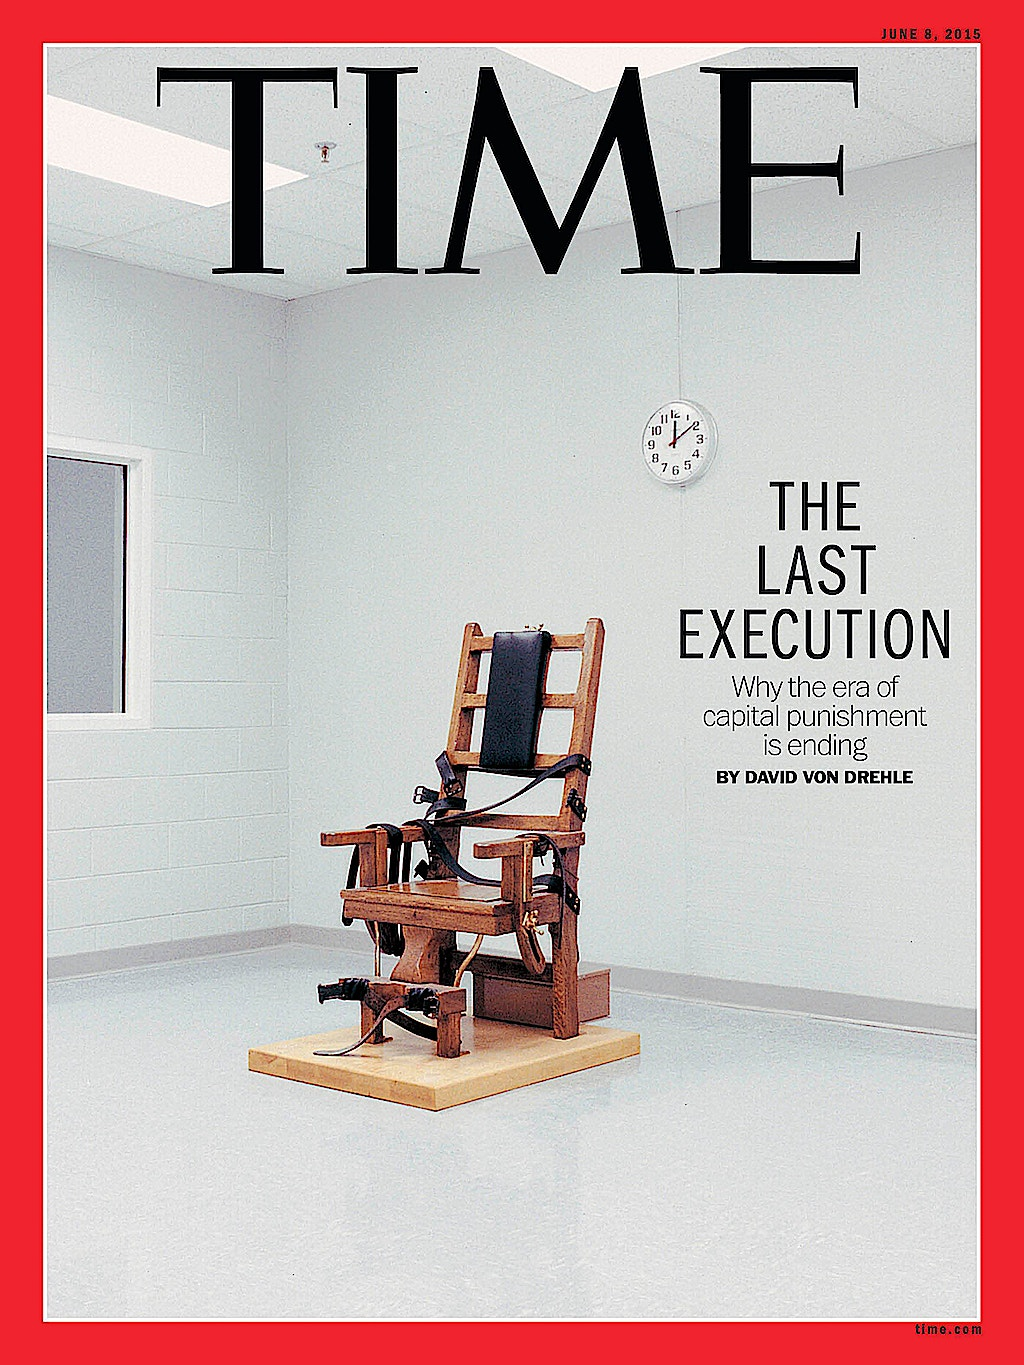 TIME Magazine Poses Five Reasons for Death Penalty Decline